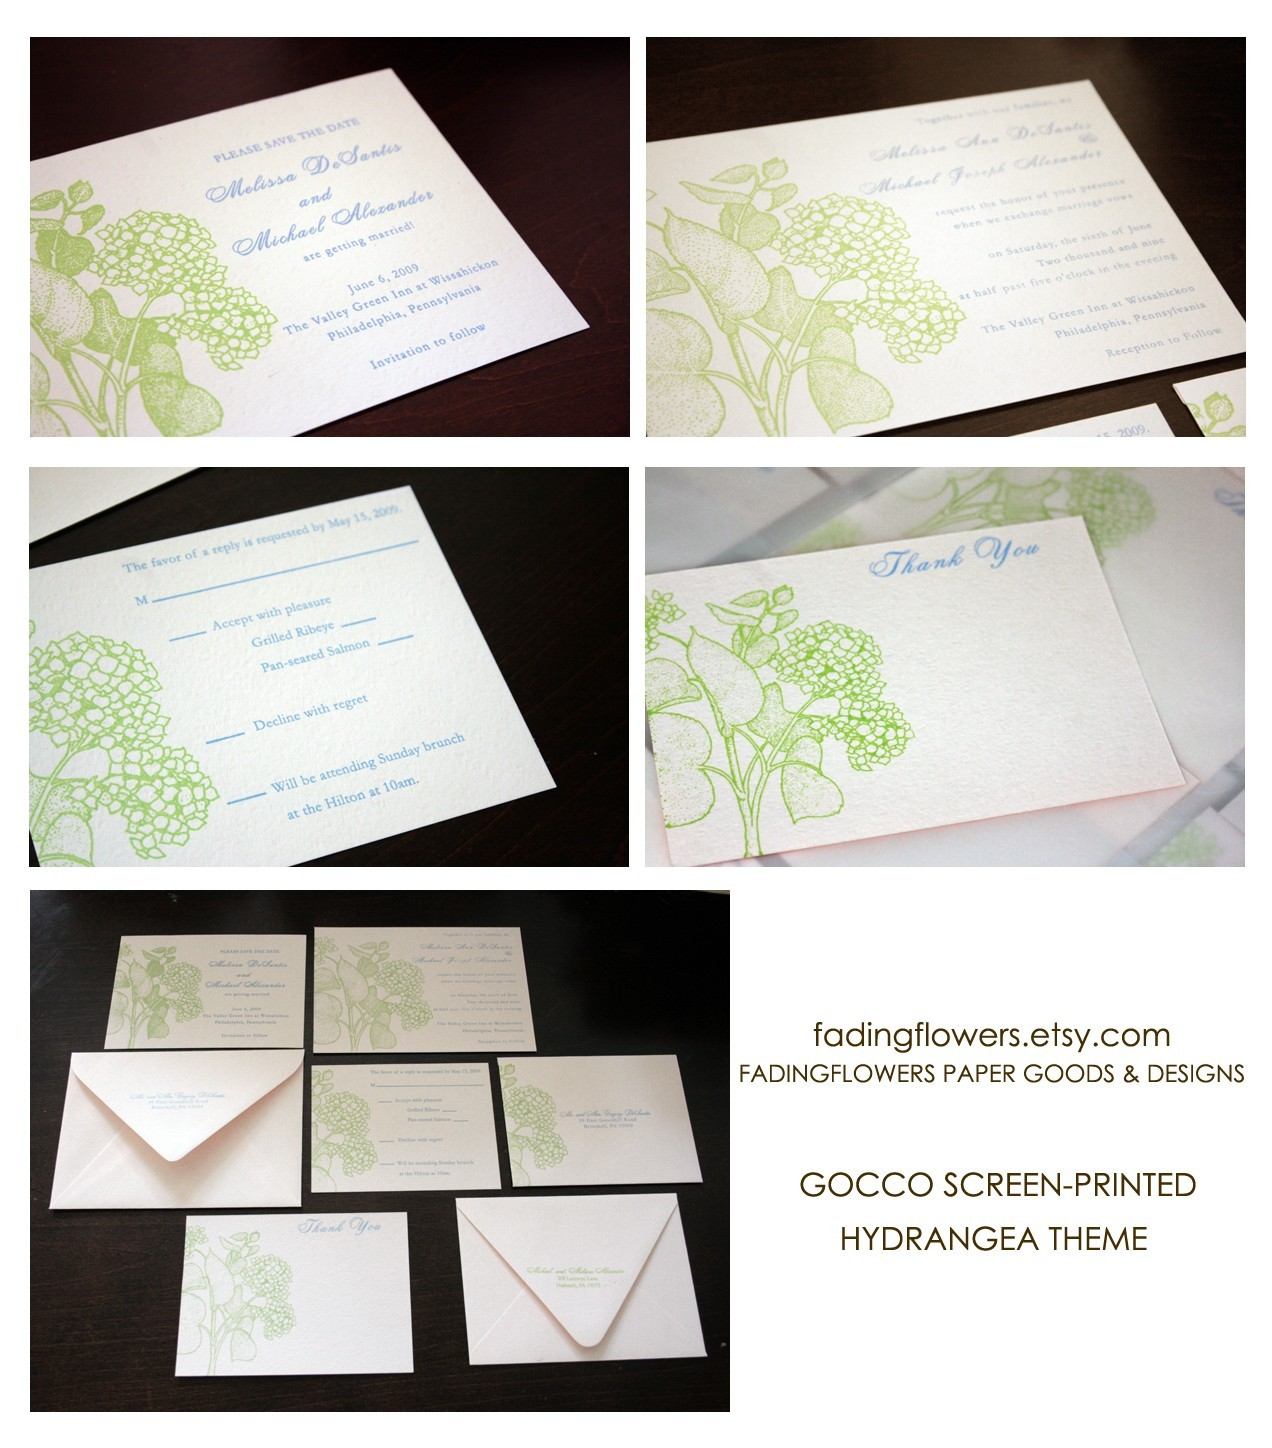 DIY, Thank you cards, Hydrangeas, Gocco, Save the date cards, Inks, Flat cards, Wedding invitations